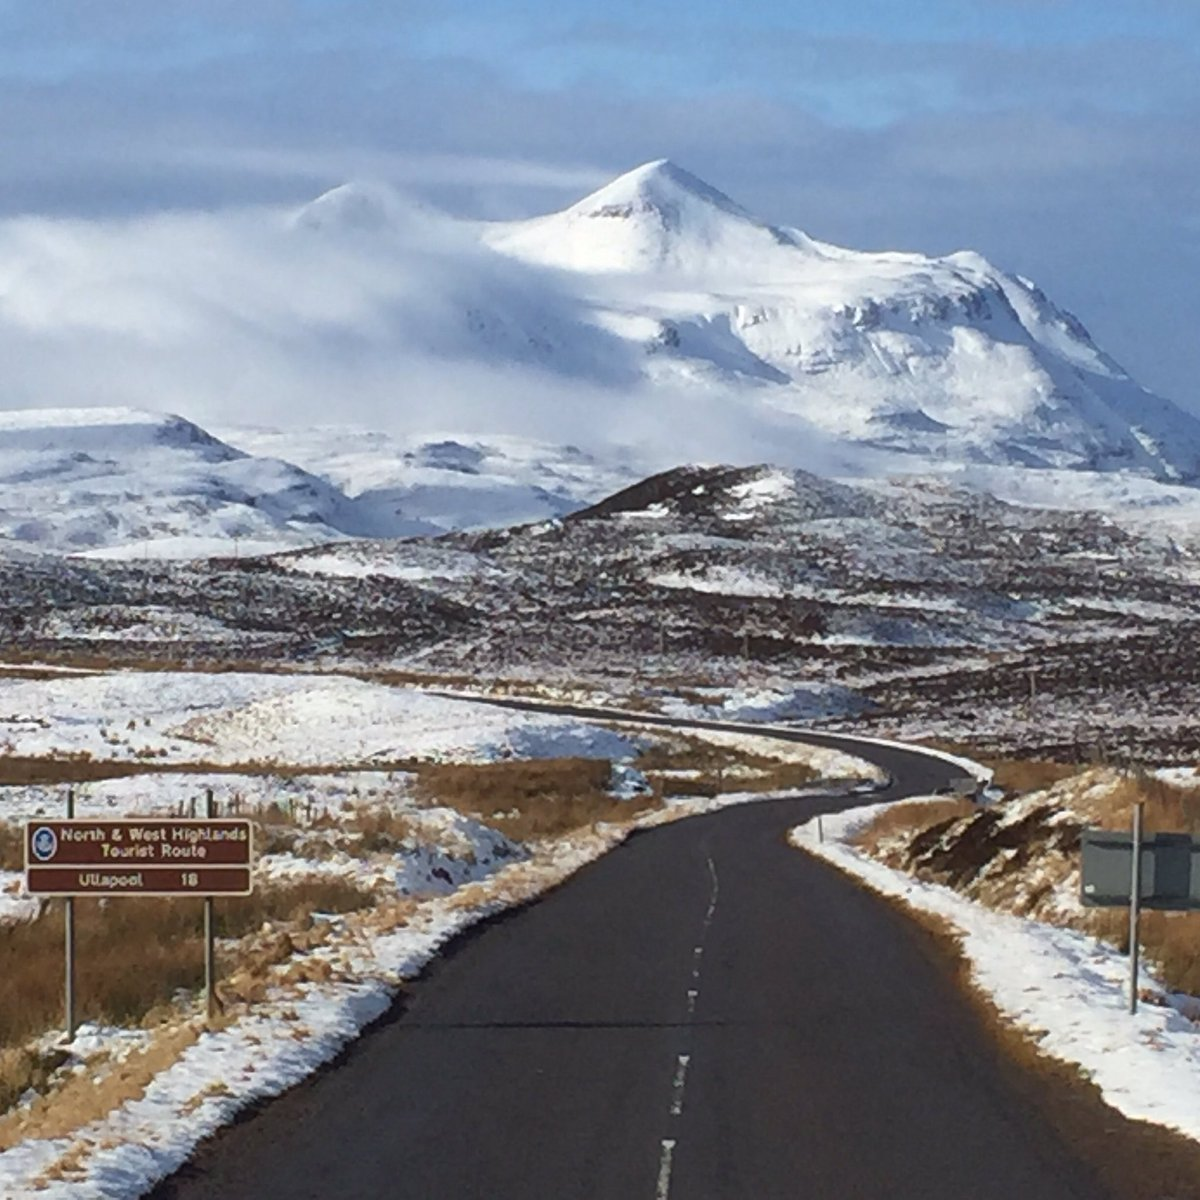 Driving in #Scotland is such a joy! Road from #Lochinver to #Ullapool today. #ScotSpirit https://t.co/AX2mj49FA5